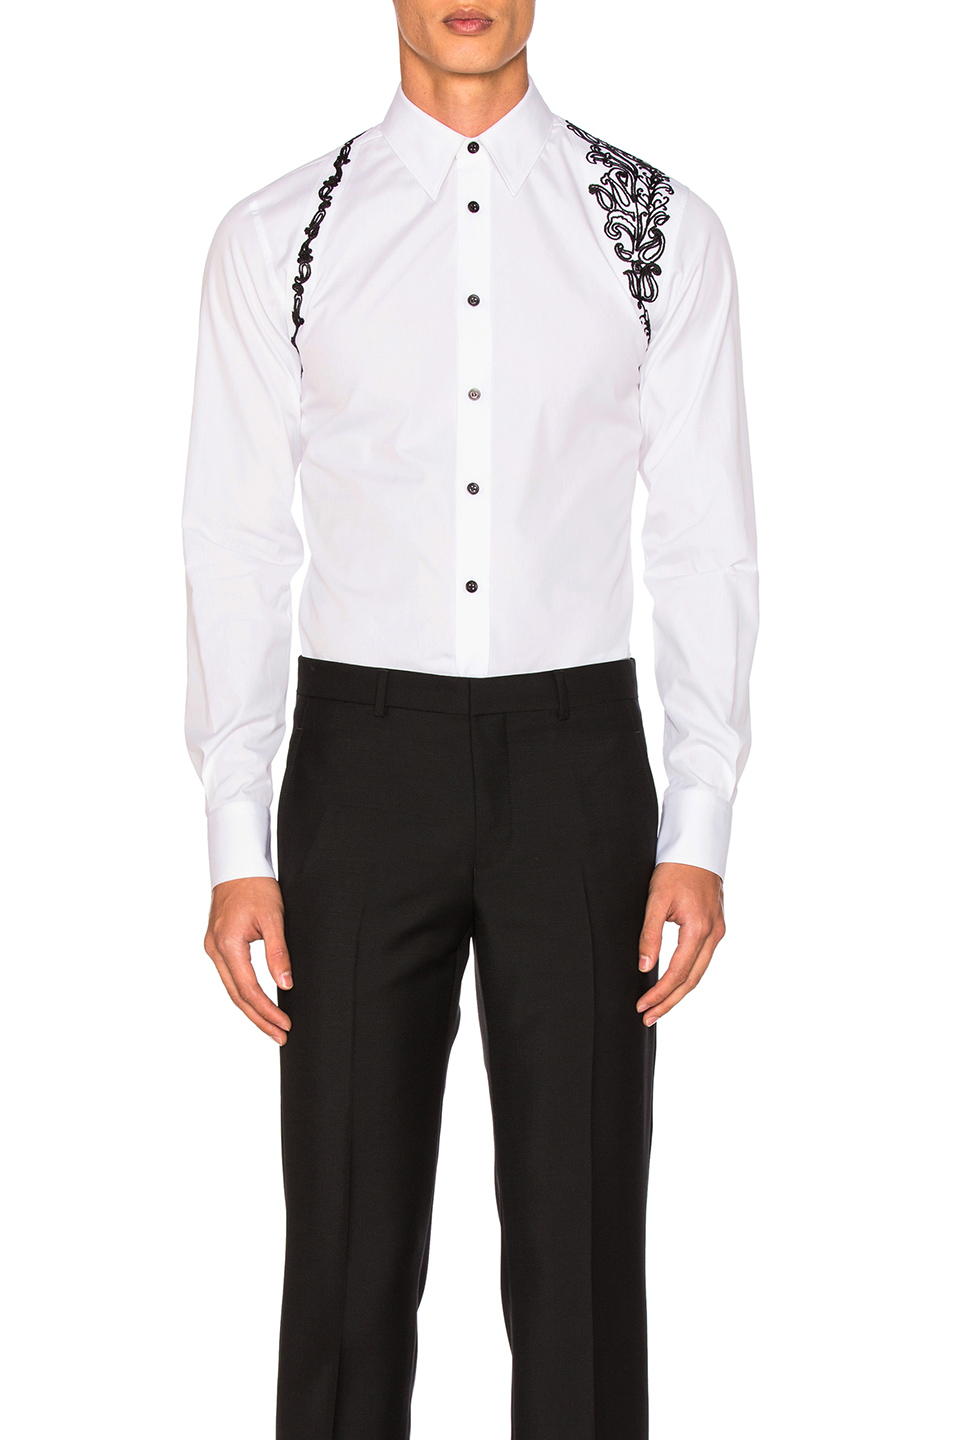 Alexander McQueen Harness Shirt in White